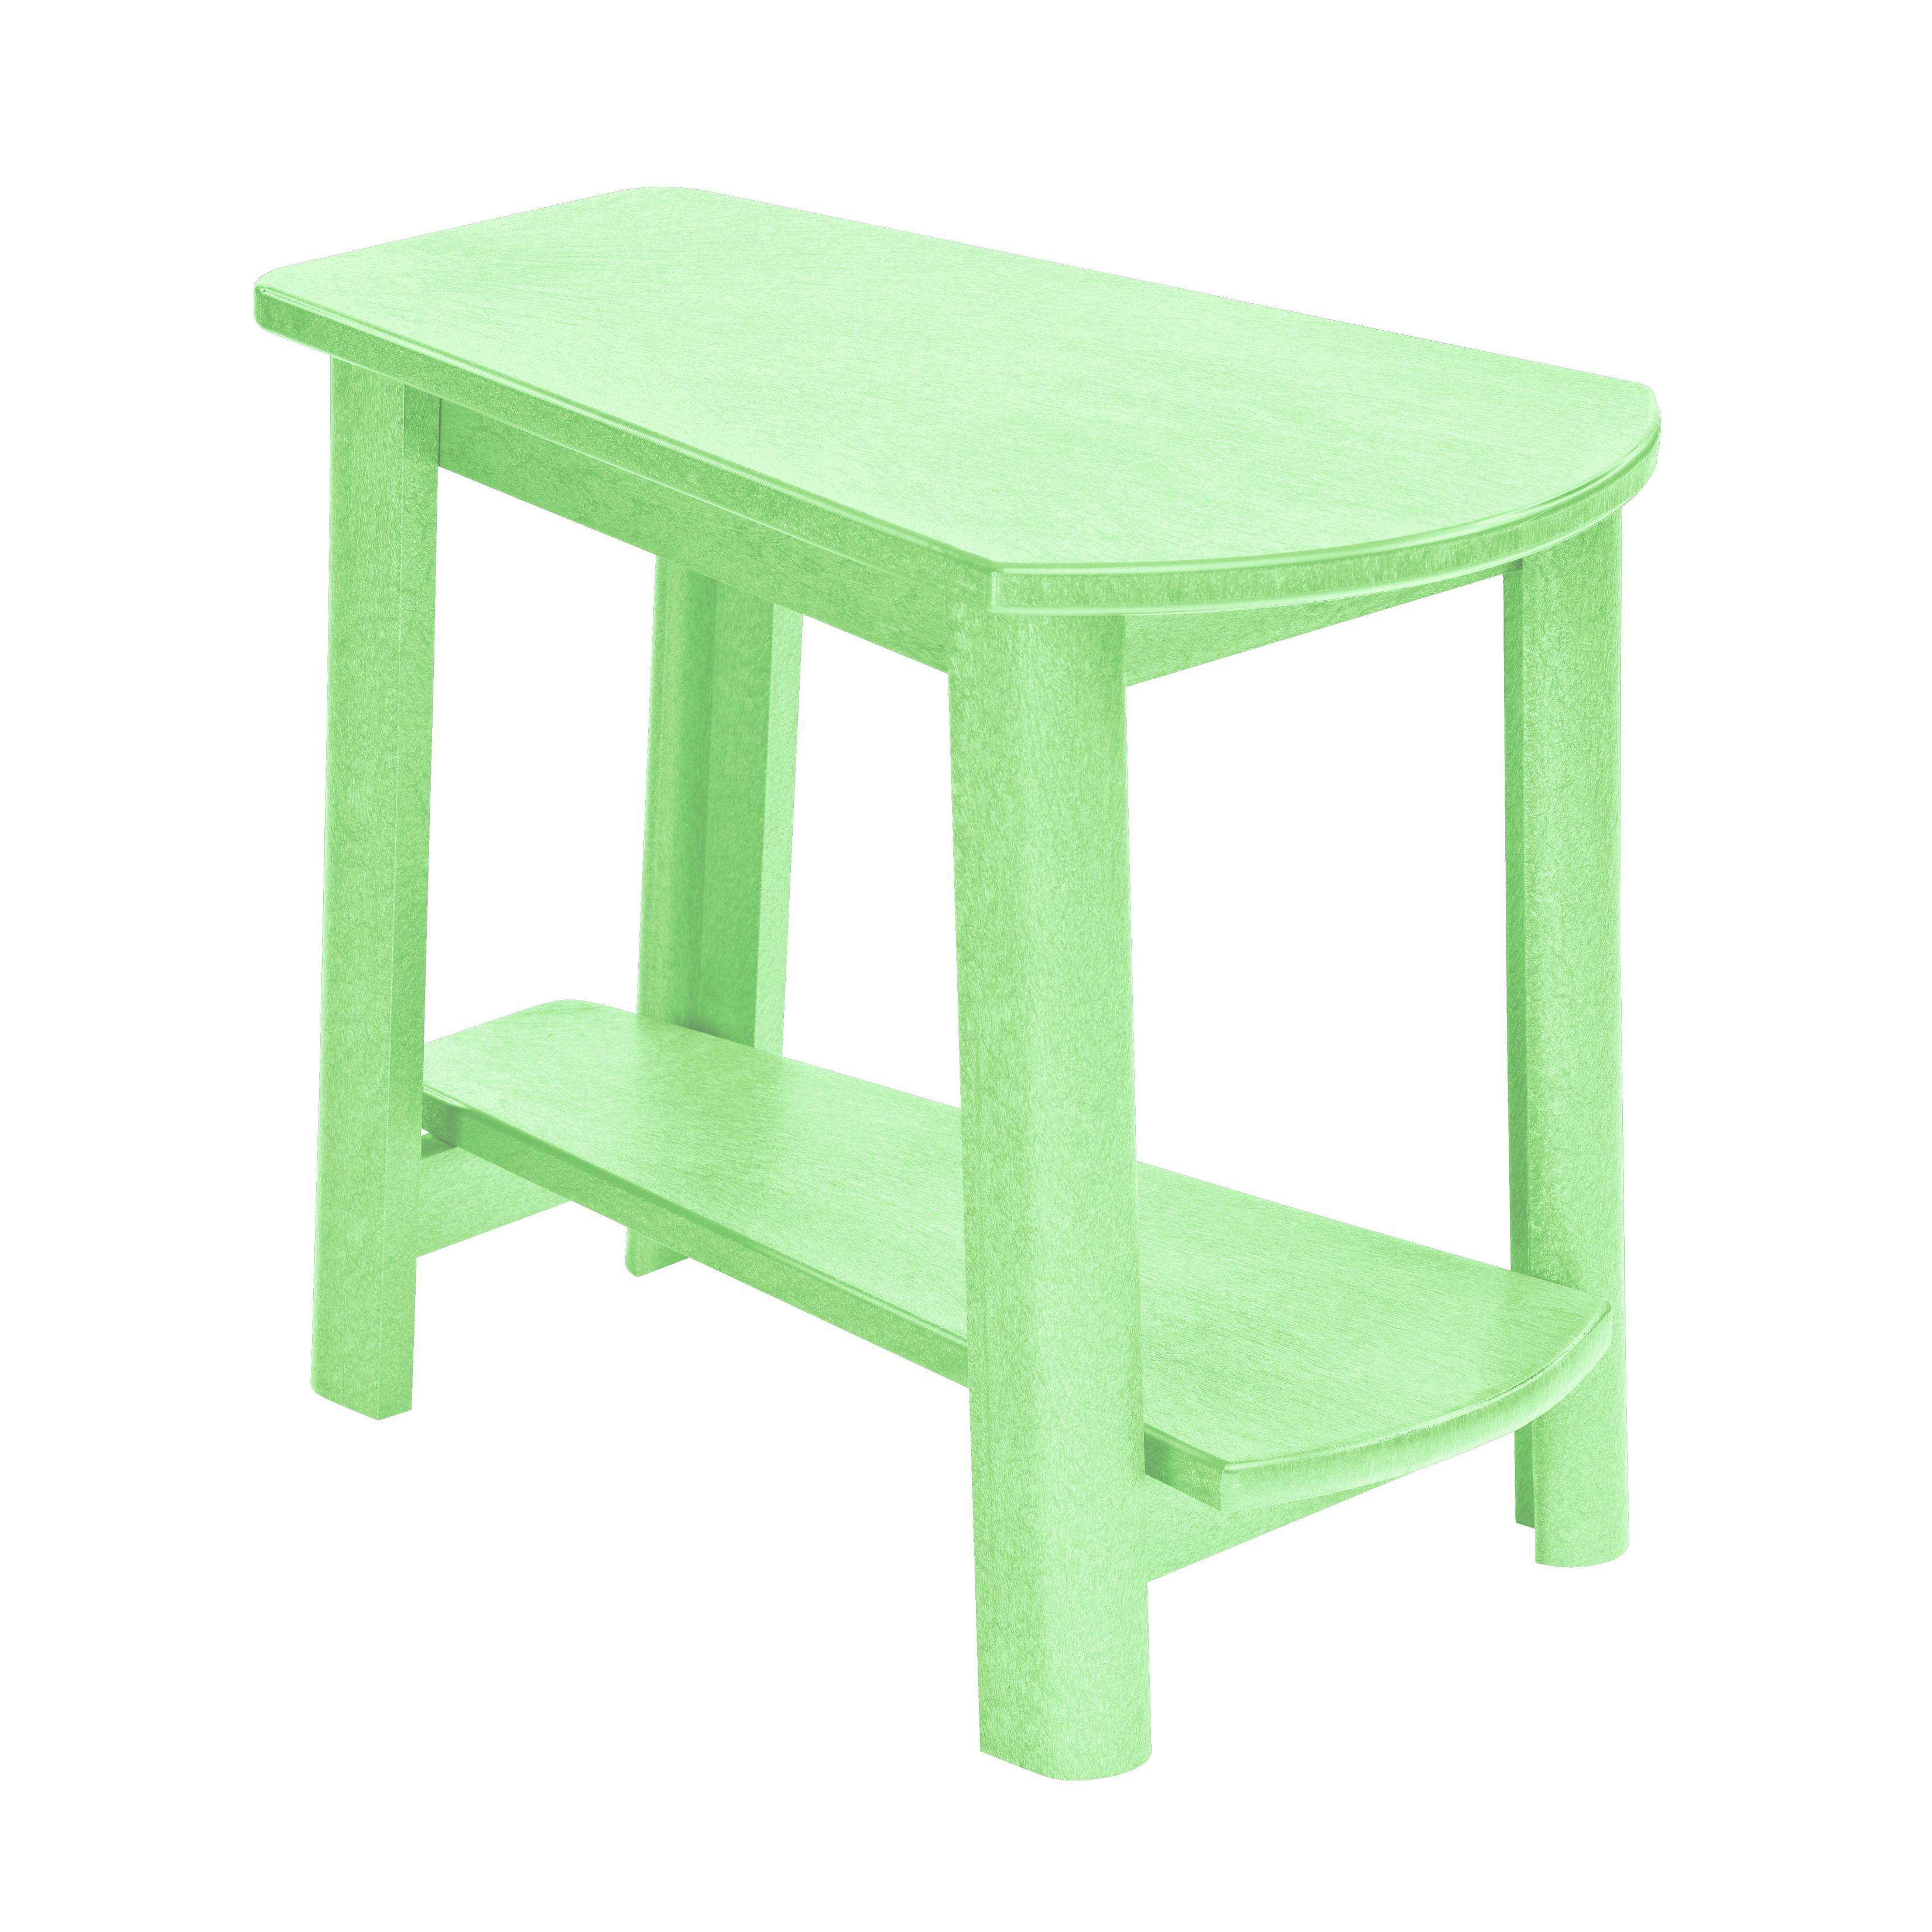 Generations Green Accent Table Lime Patio Furniture Plastic